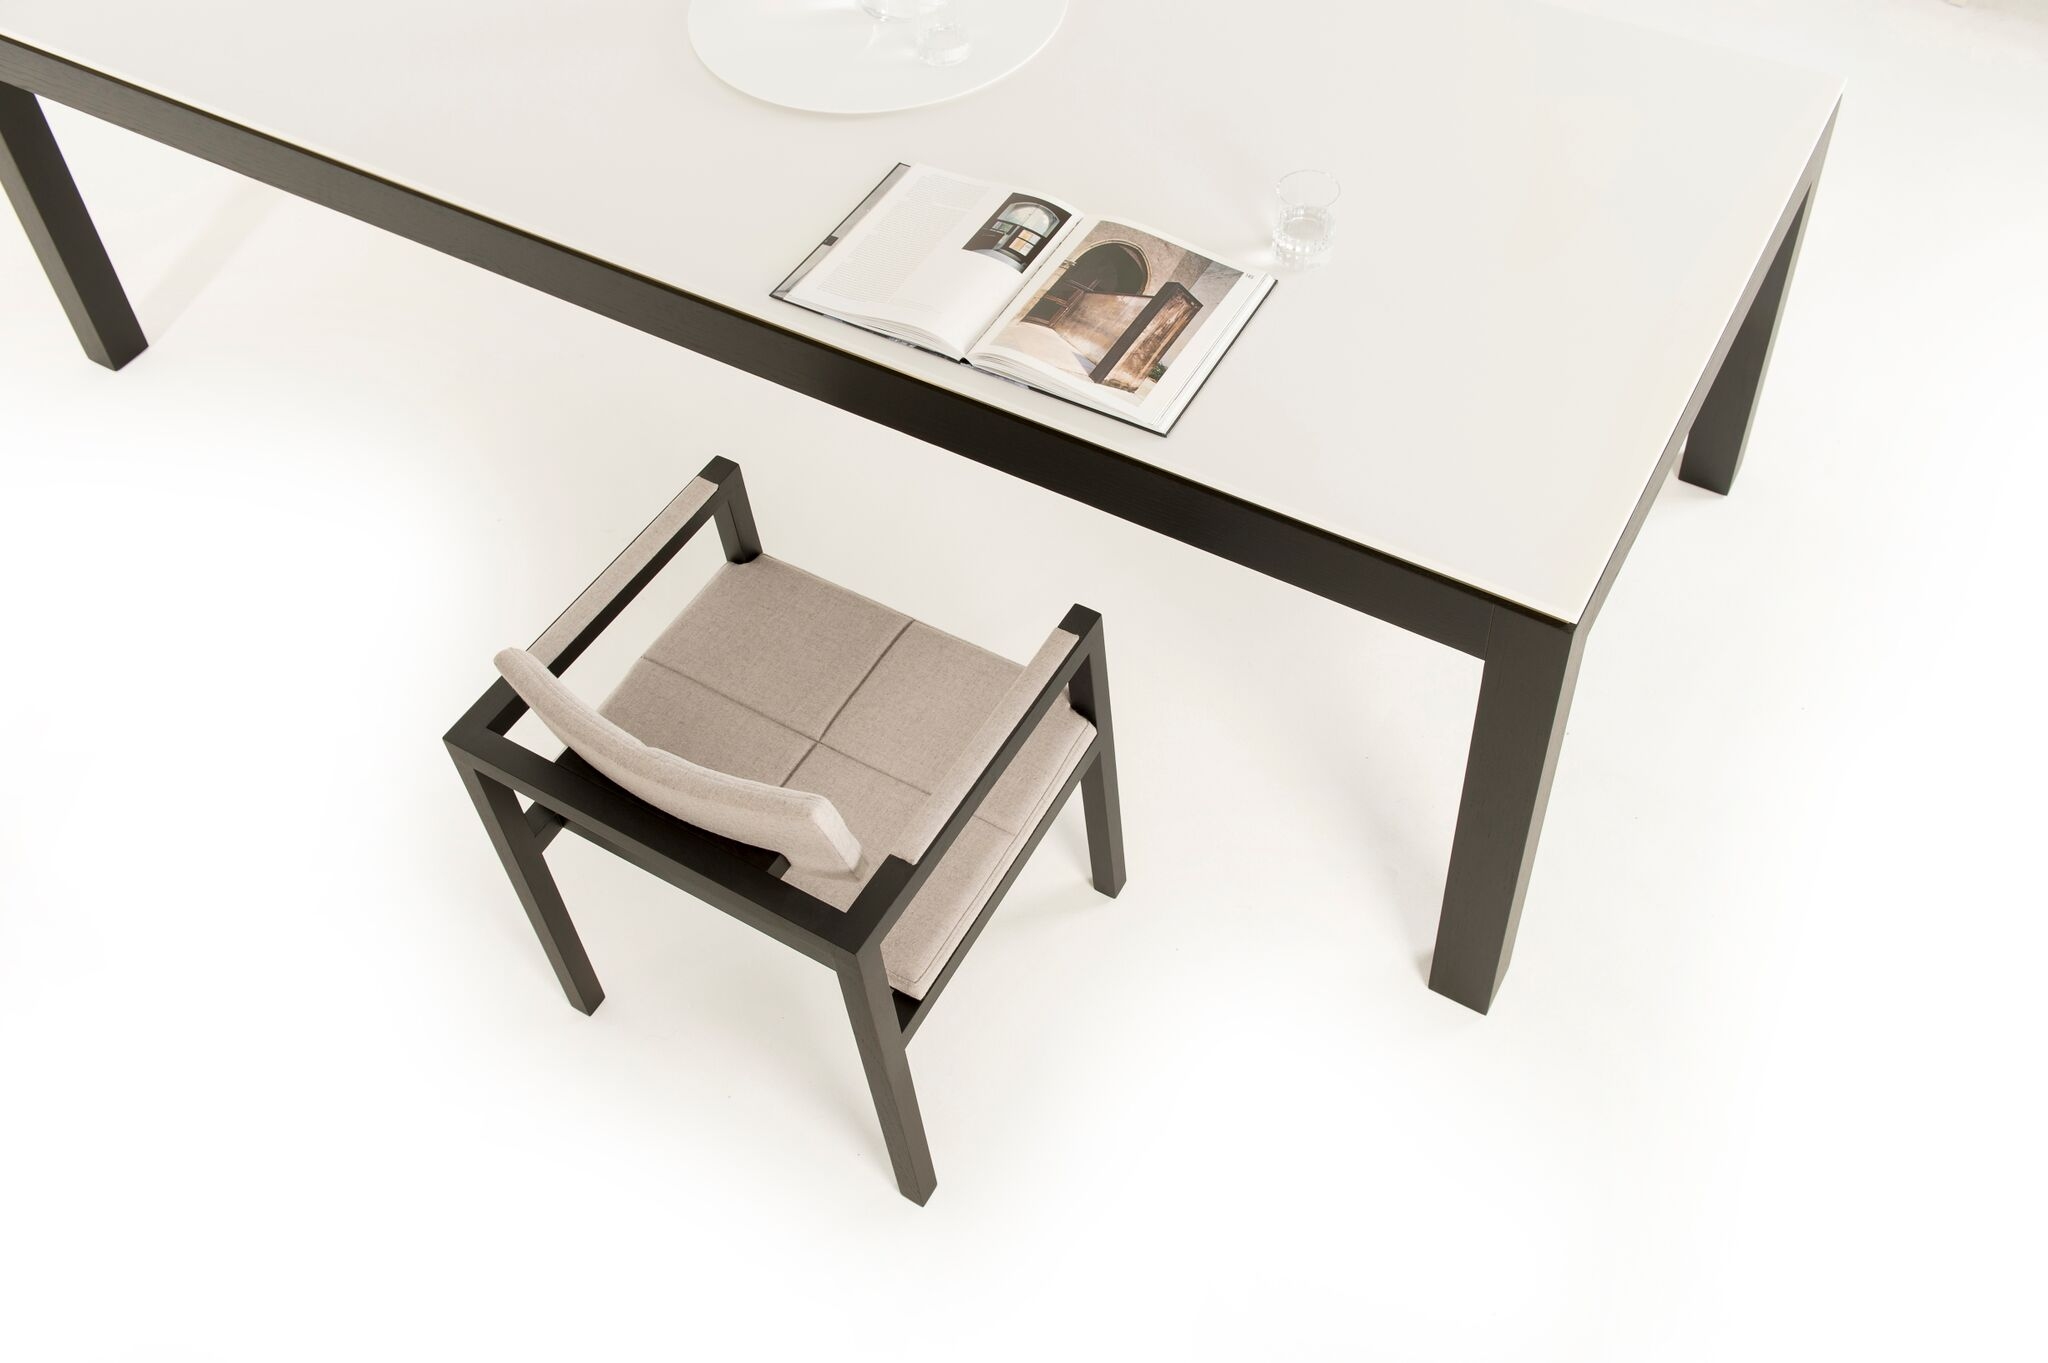 Gallery Of The Mila Table By Fraco Crea Local Australian Furniture Design Melbourne, Vic Image 7